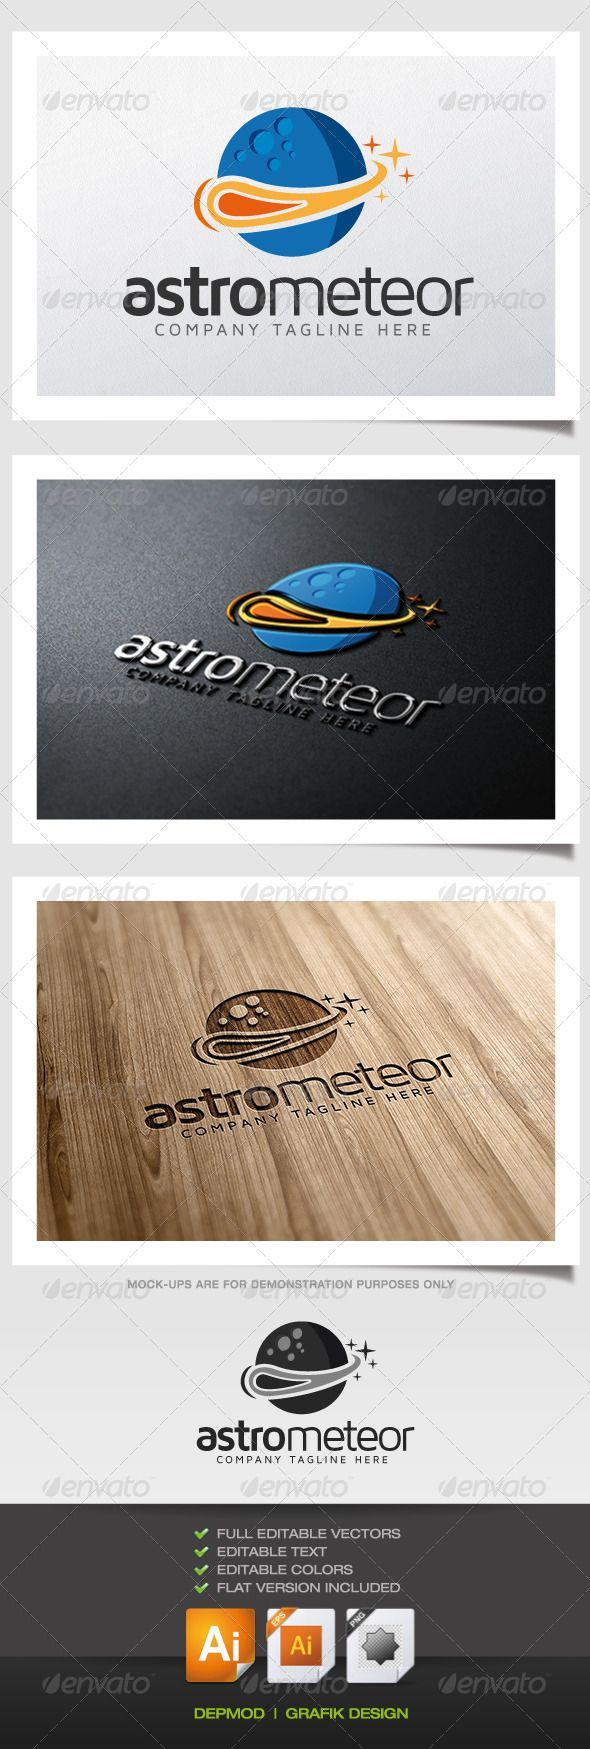 Astro Meteor Logo — Vector EPS #clear #meteor • Available here → https://graphicriver.net/item/astro-meteor-logo/5476194?ref=pxcr